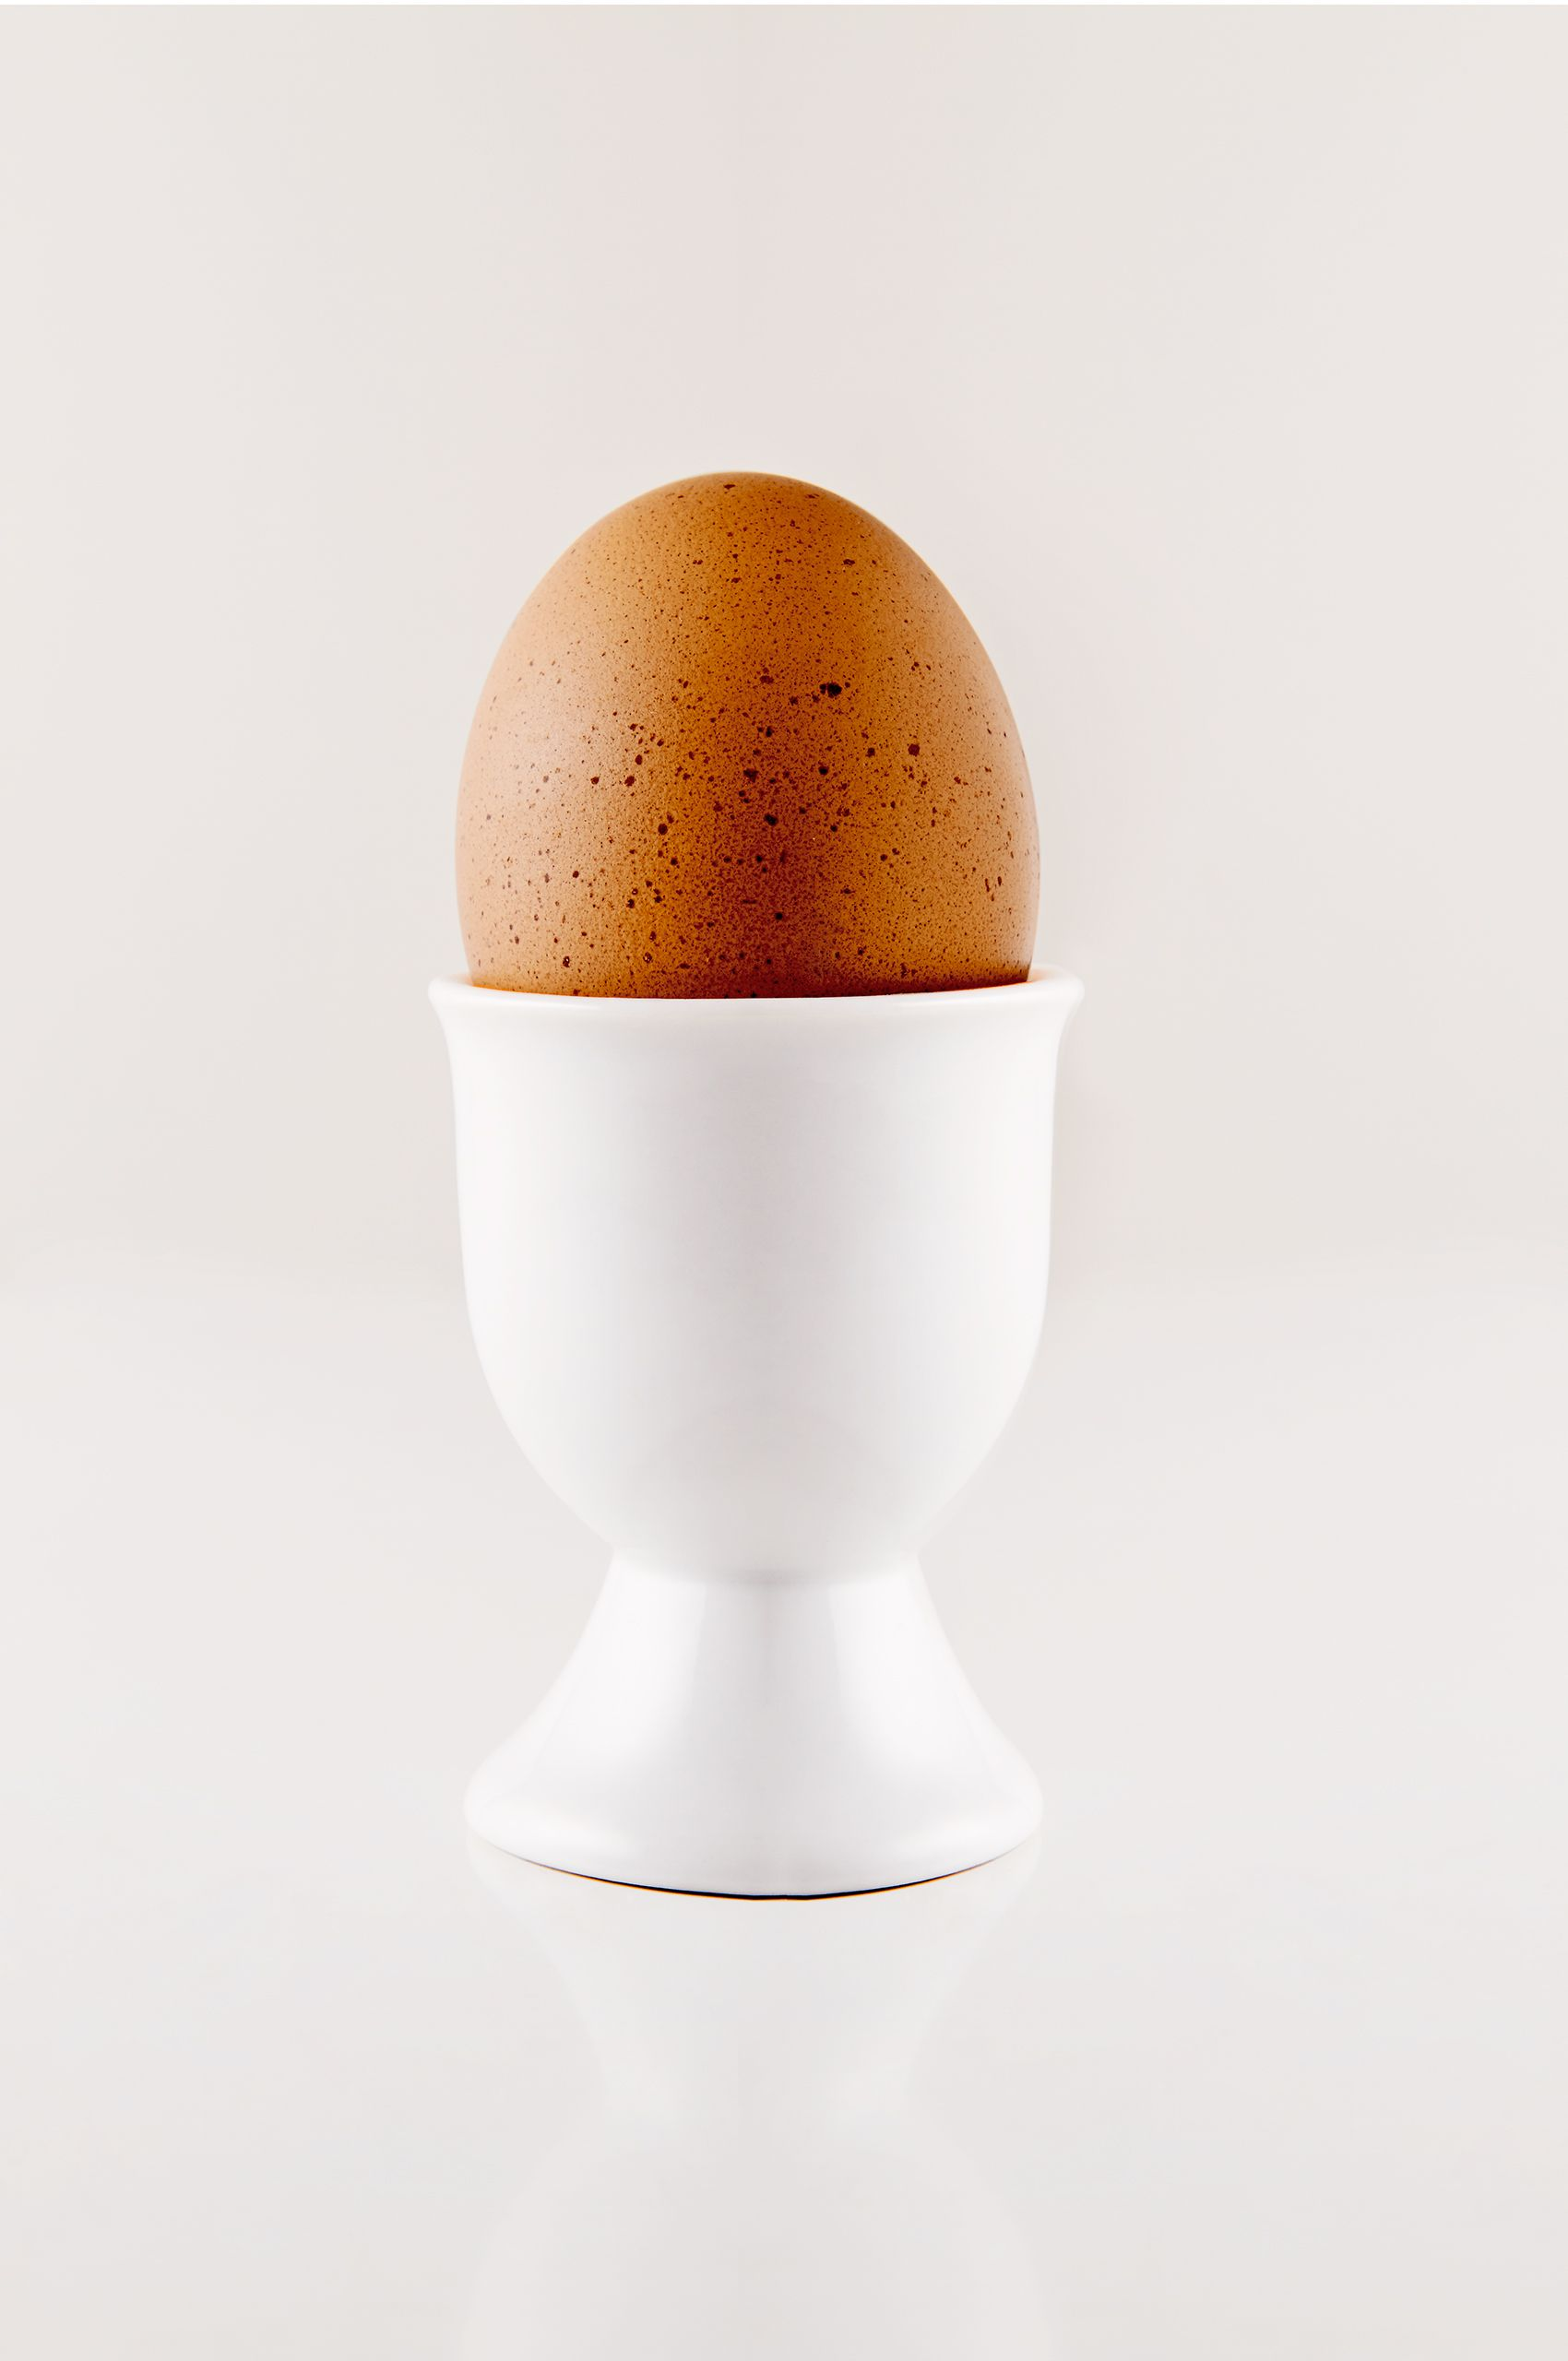 THE_INCREDIBLE_EGG_084.jpg